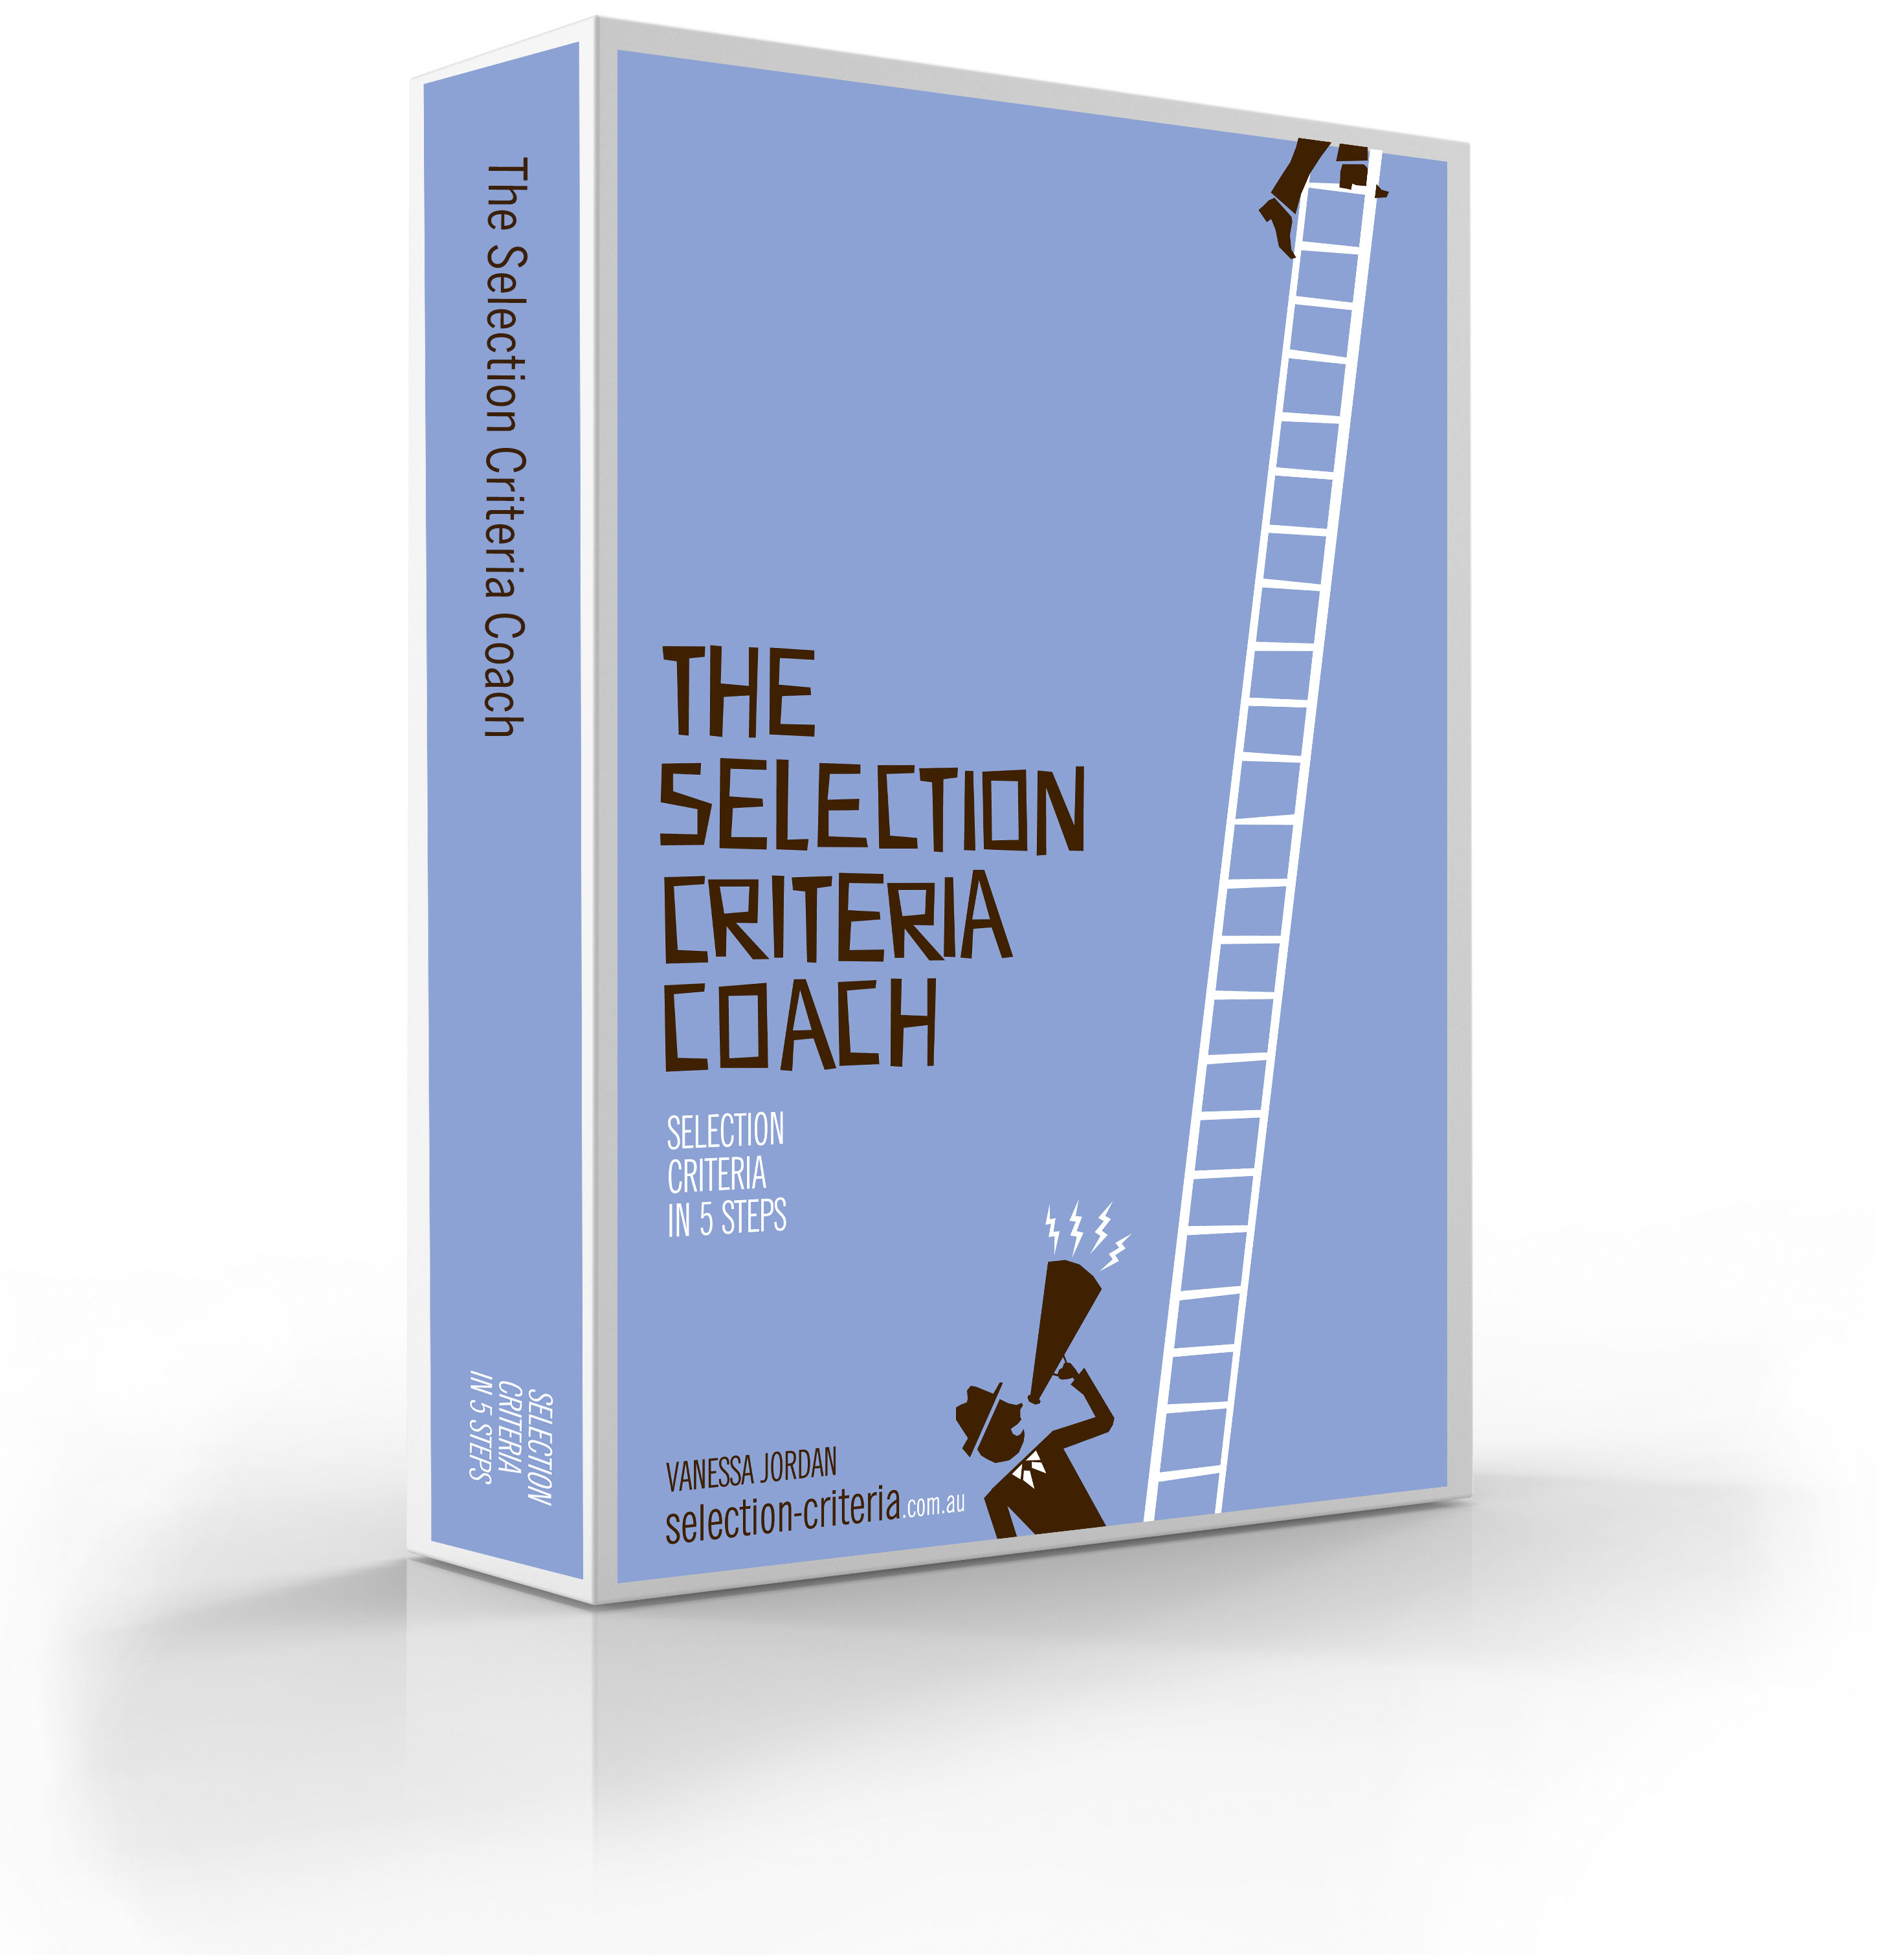 The Selection Criteria Coach Book image